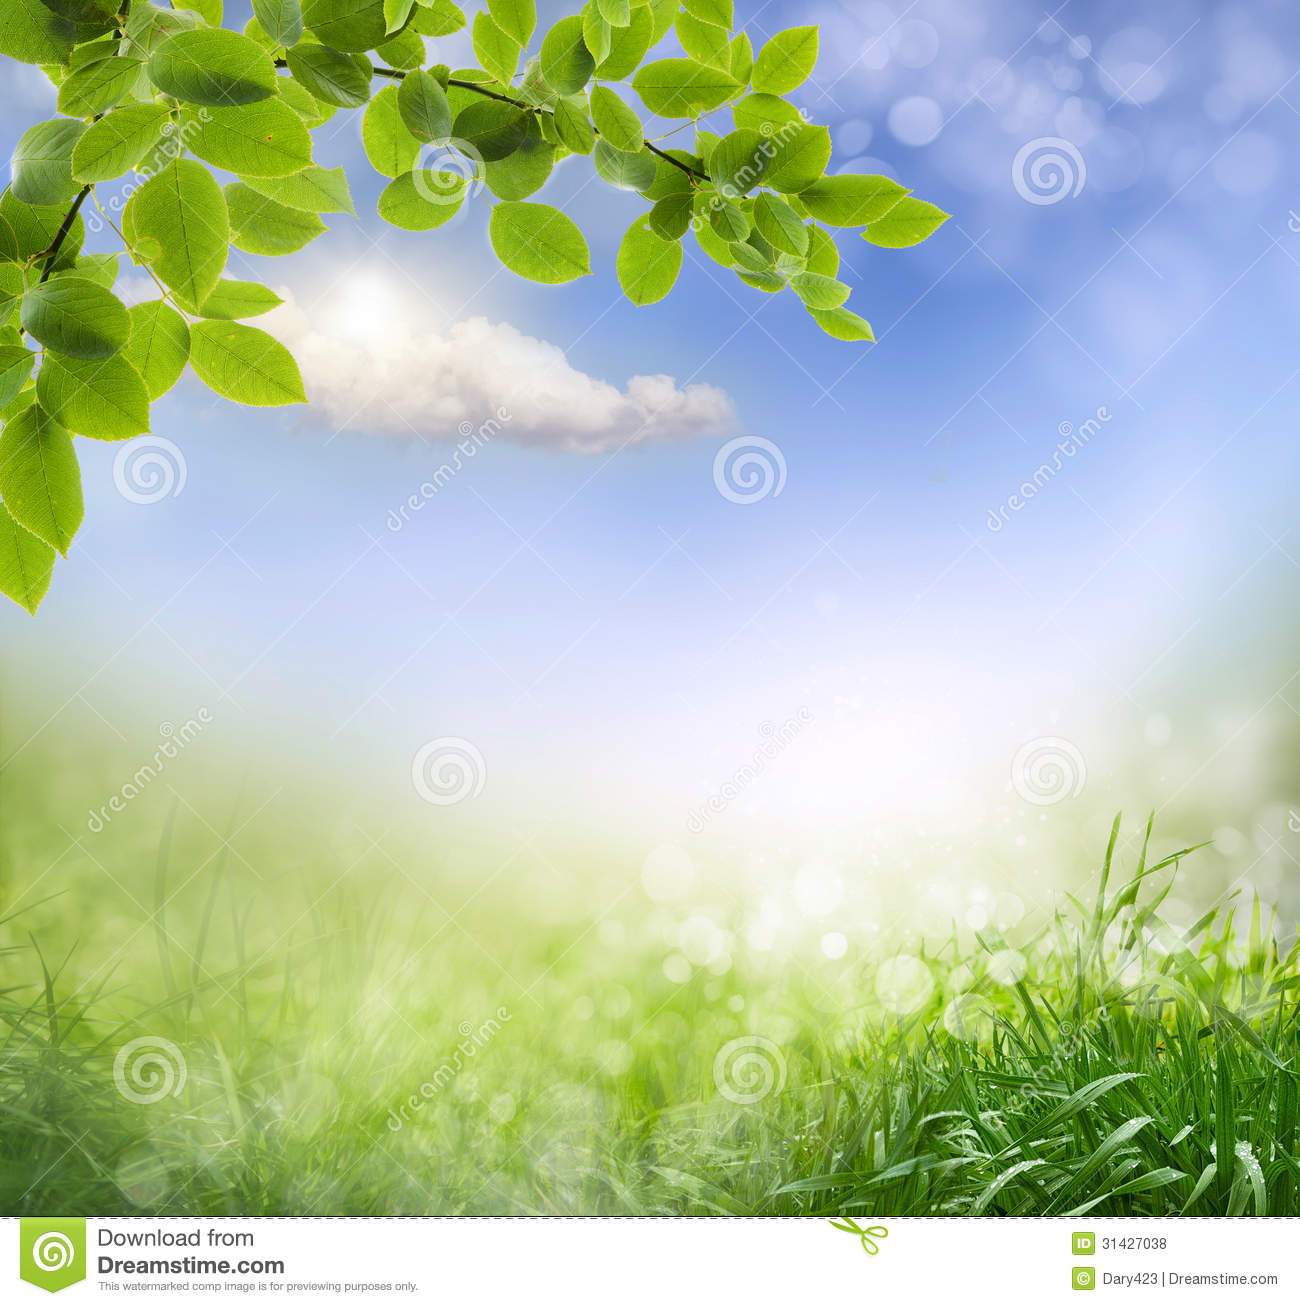 spring abstract background - photo #32